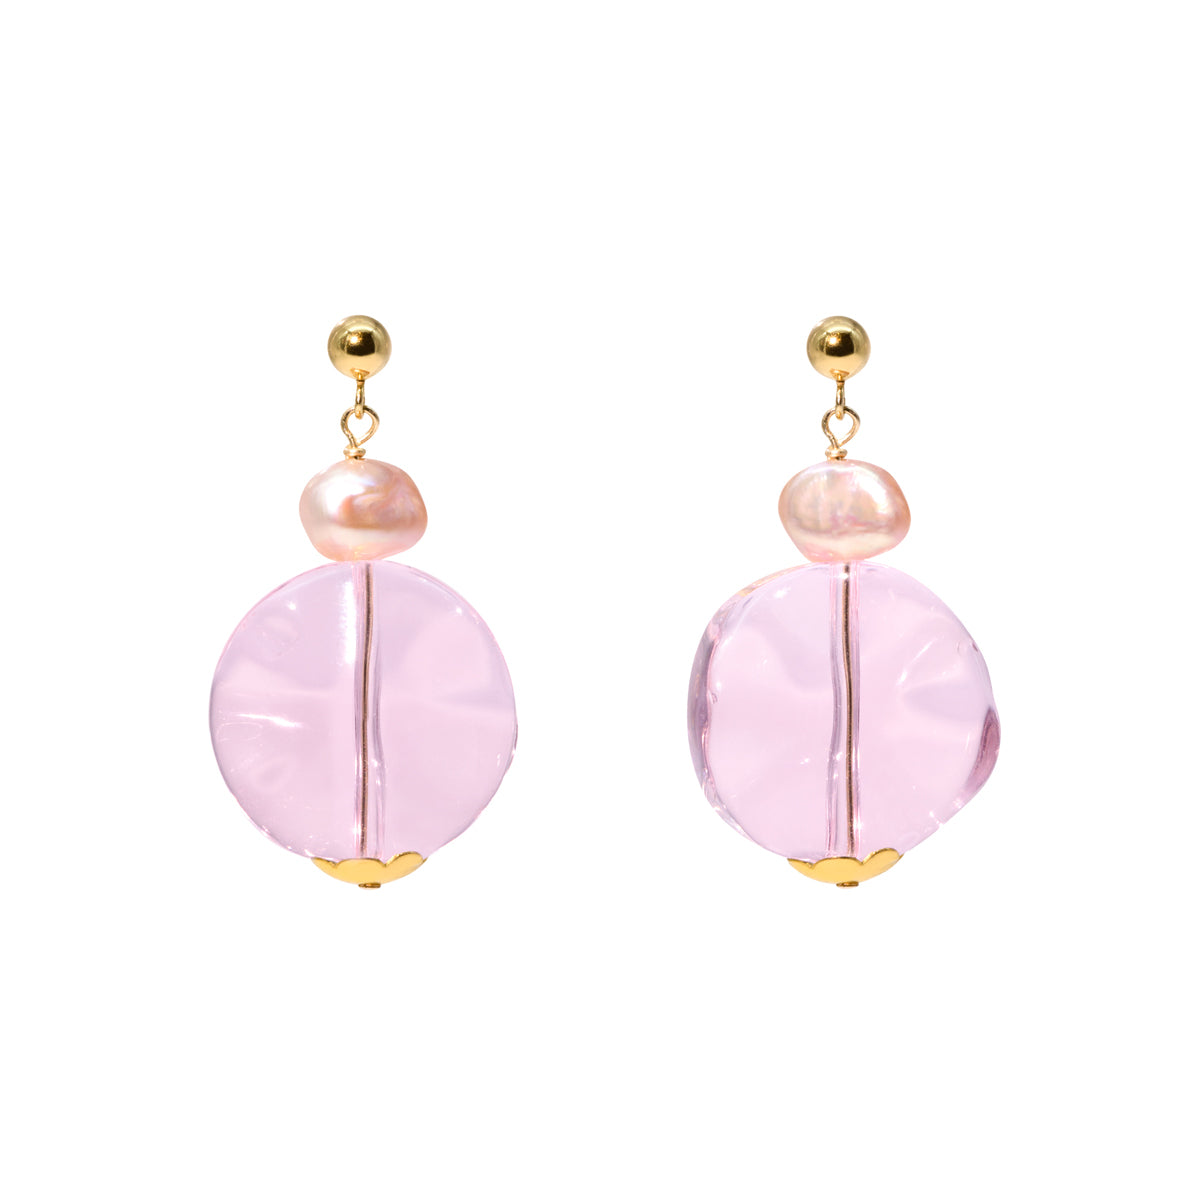 The Gold Candy Cloud Stud Earrings